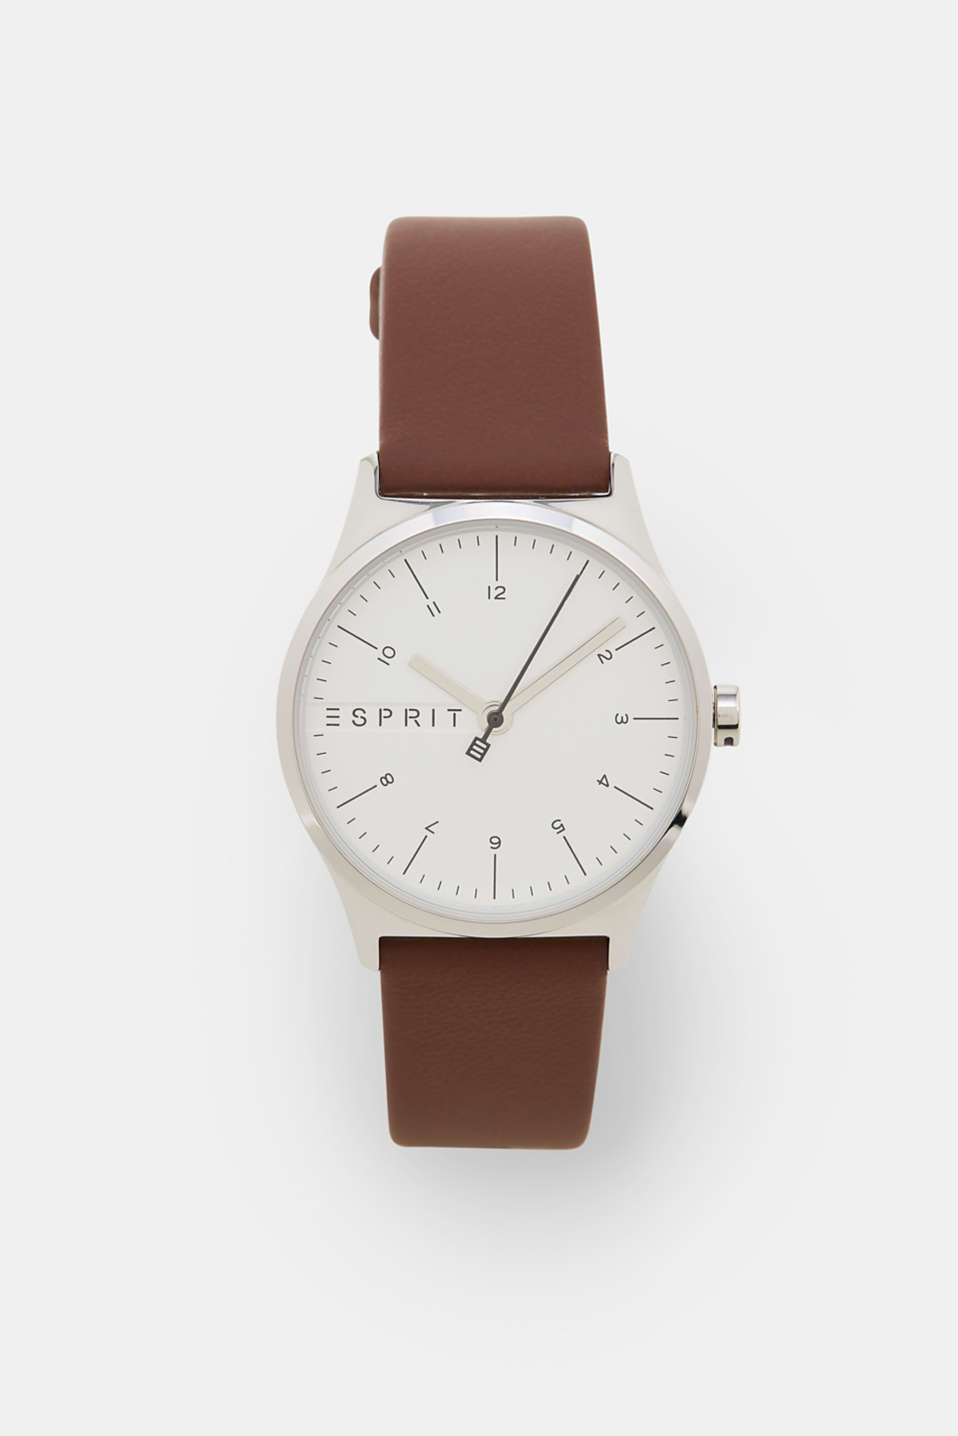 Esprit - Stainless steel watch with a leather strap